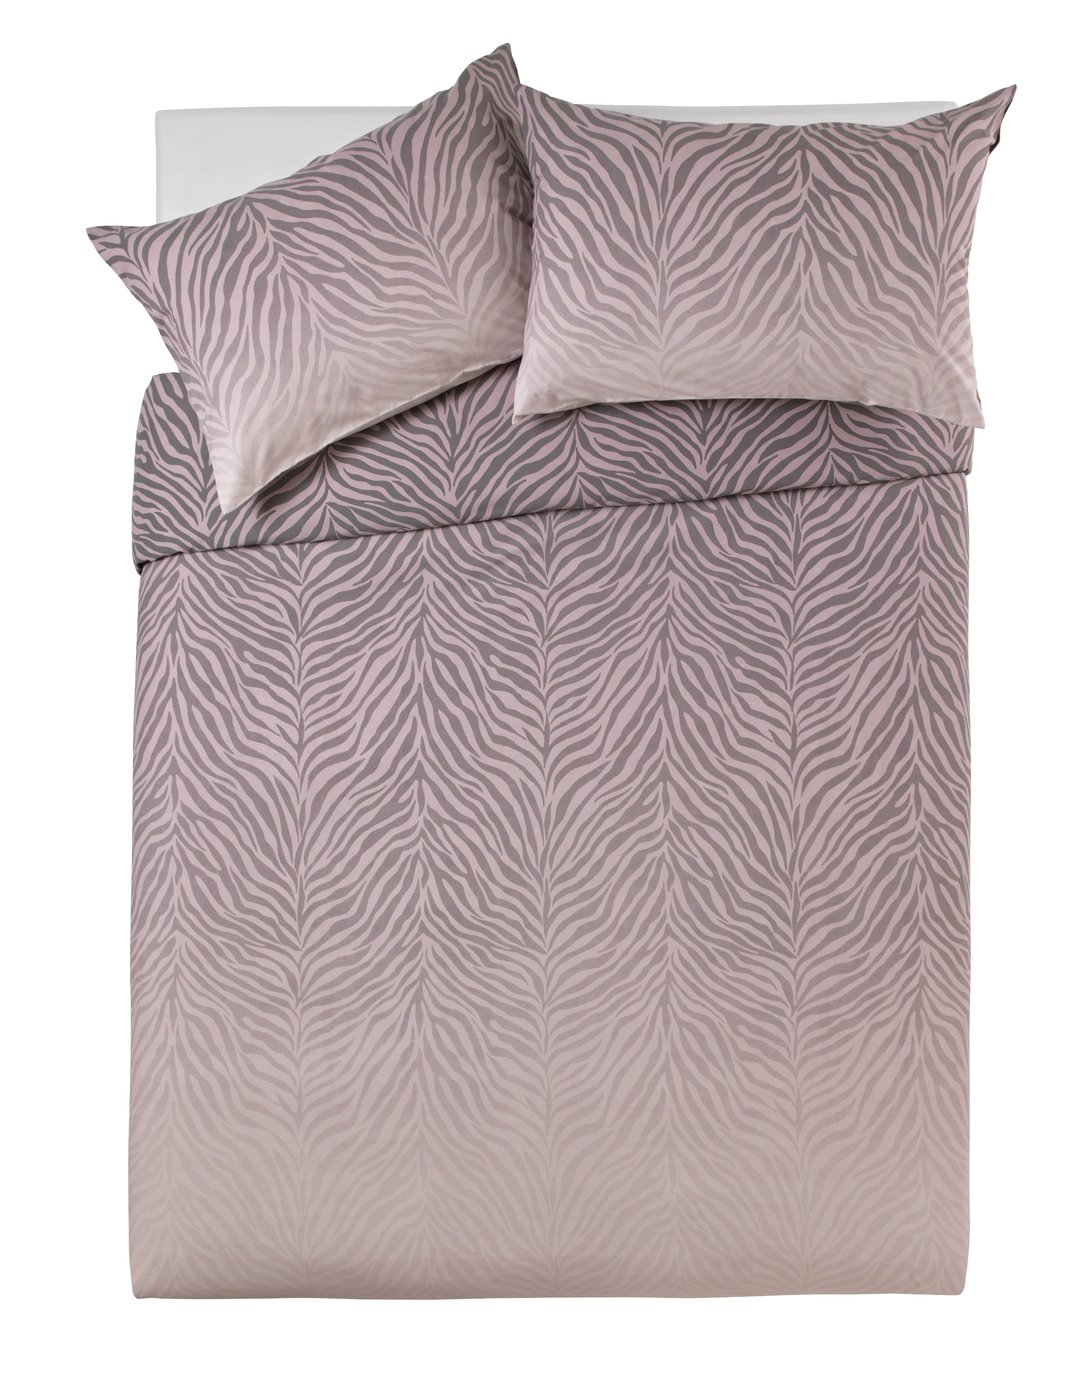 Argos Home Blush Zebra Ombre Bedding Set - Double